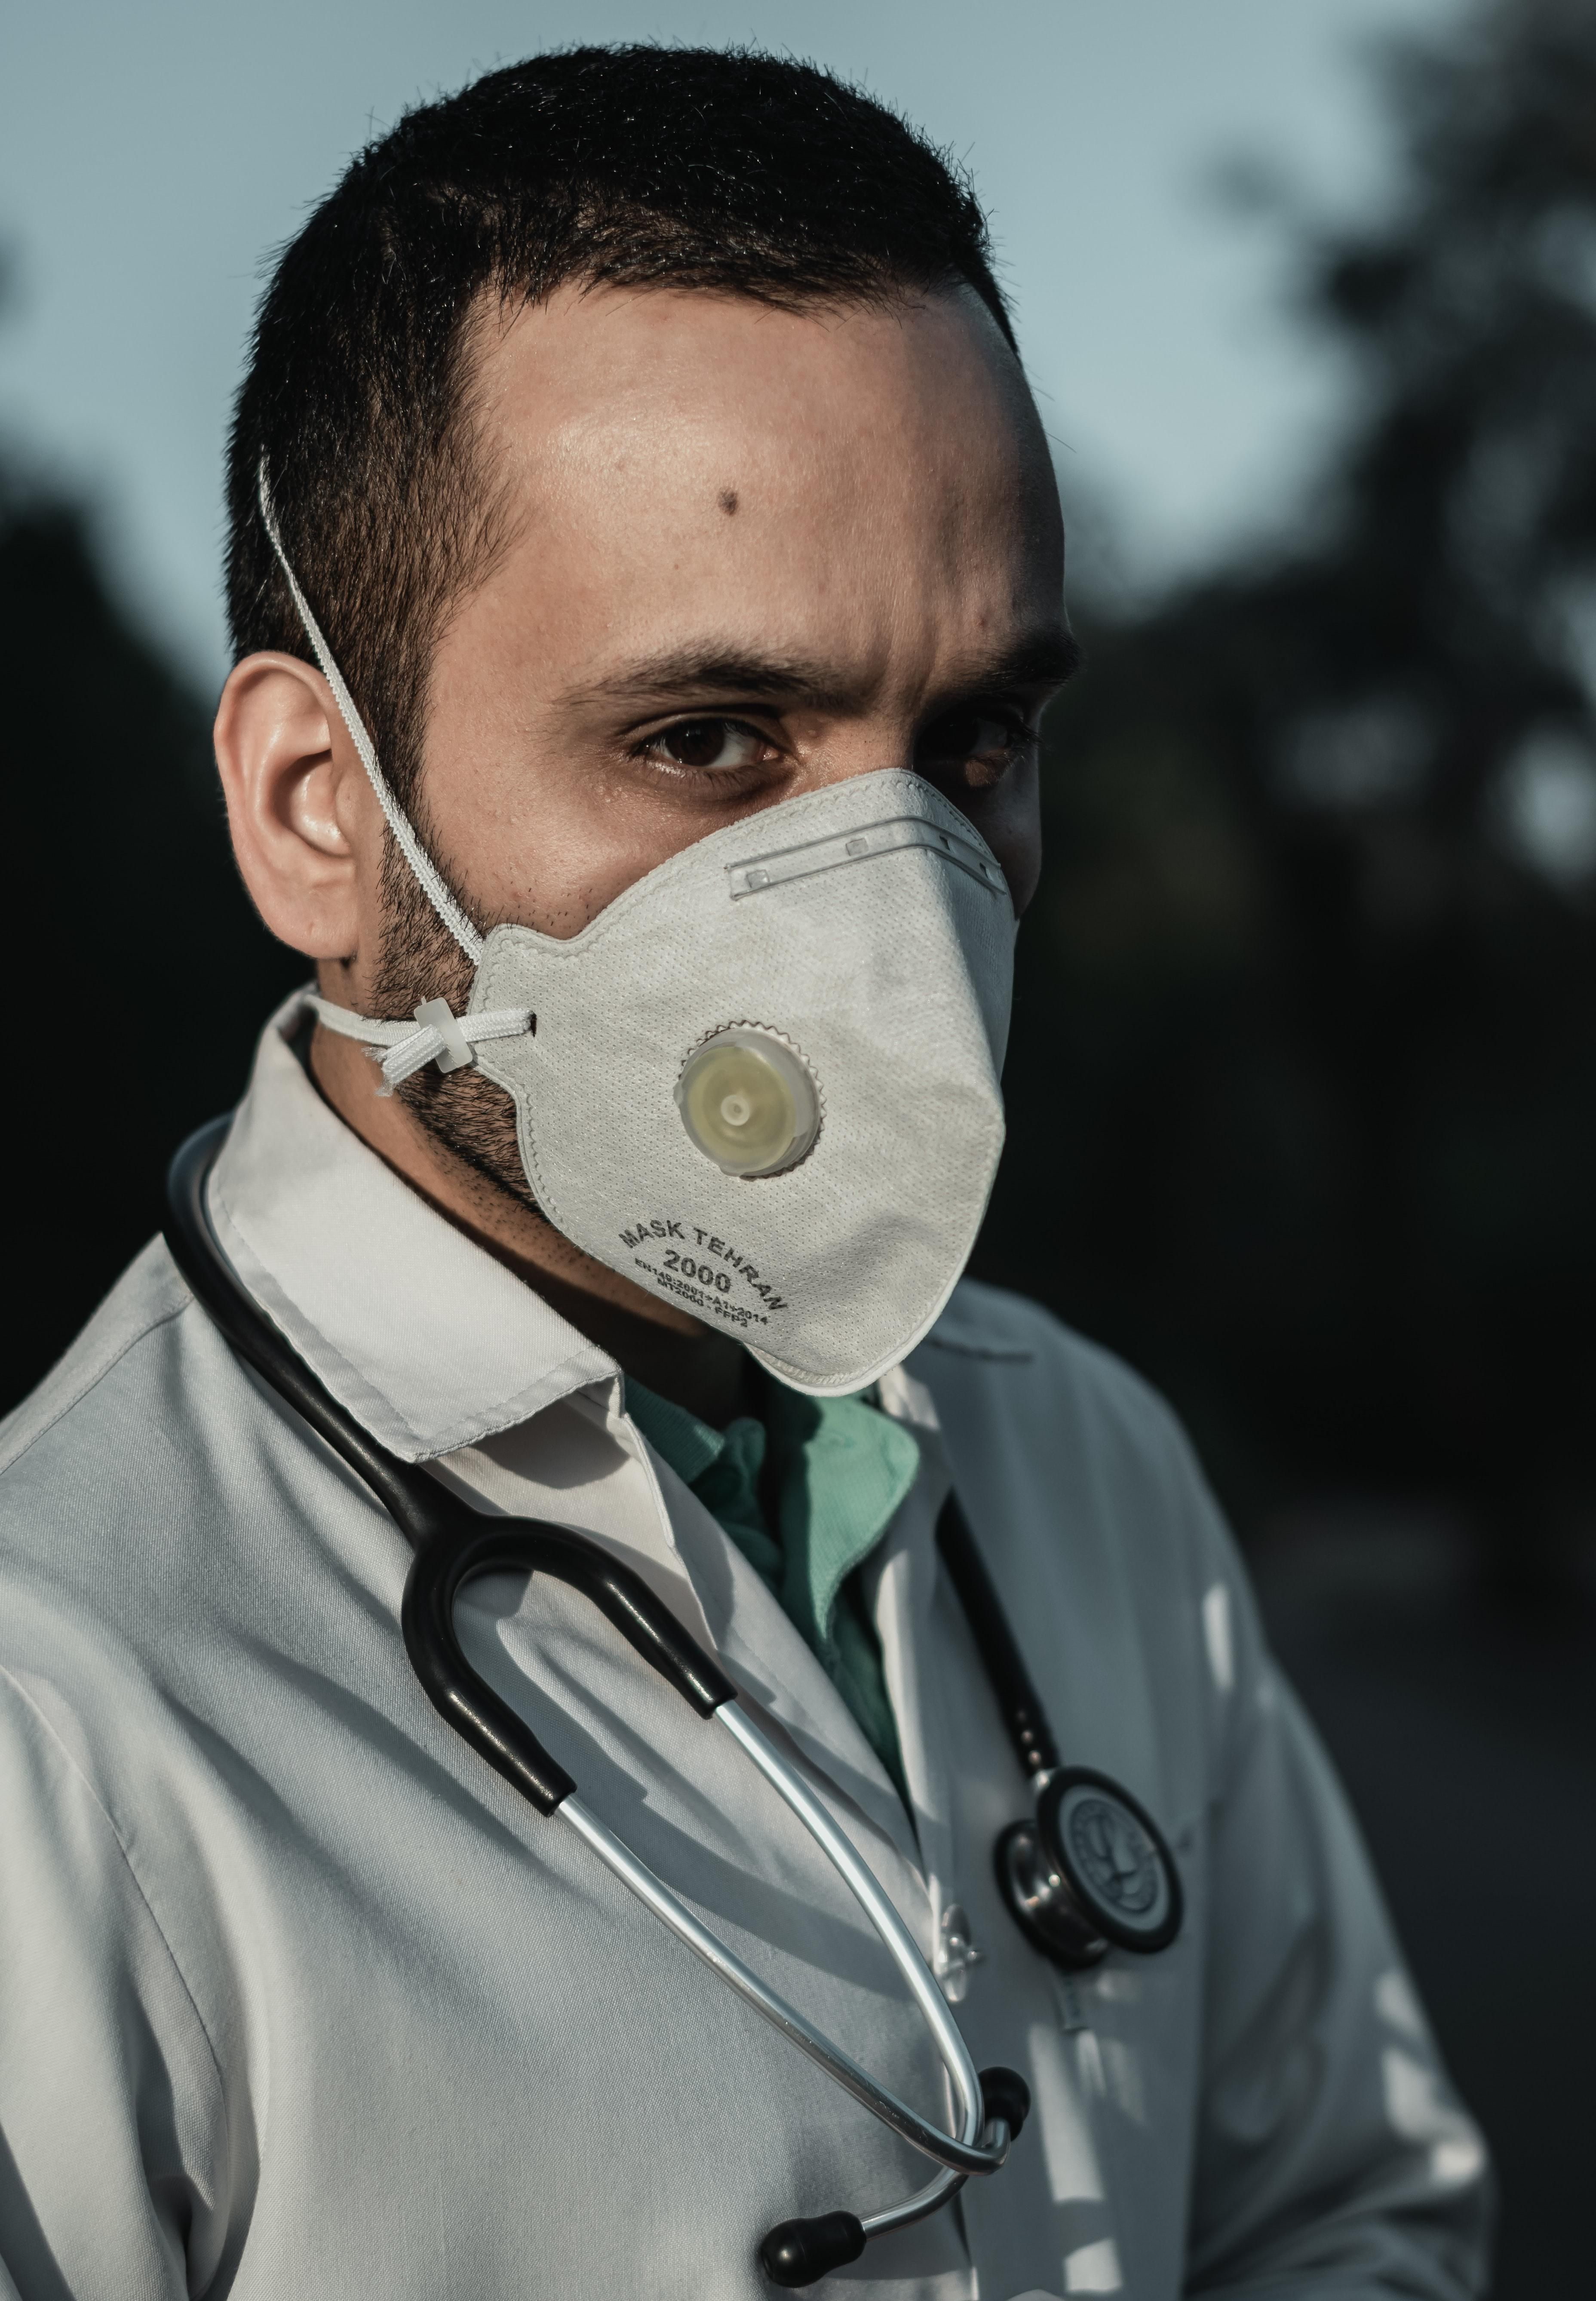 Doctors Are Being Laid Off, Overworked During A Pandemic